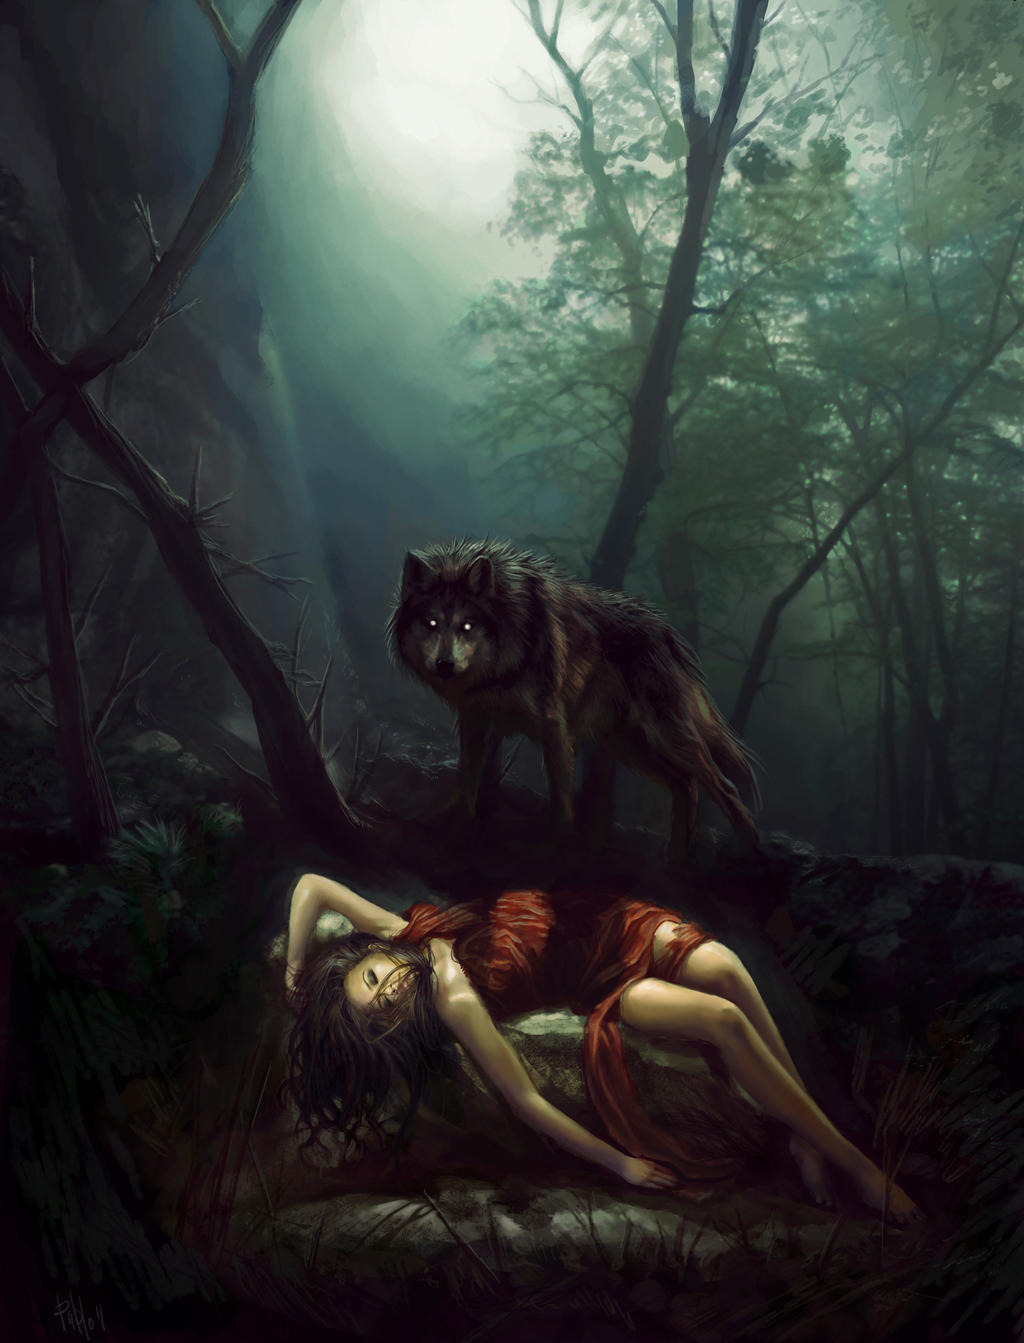 Red riding hood by PabloFernandezArtwrk